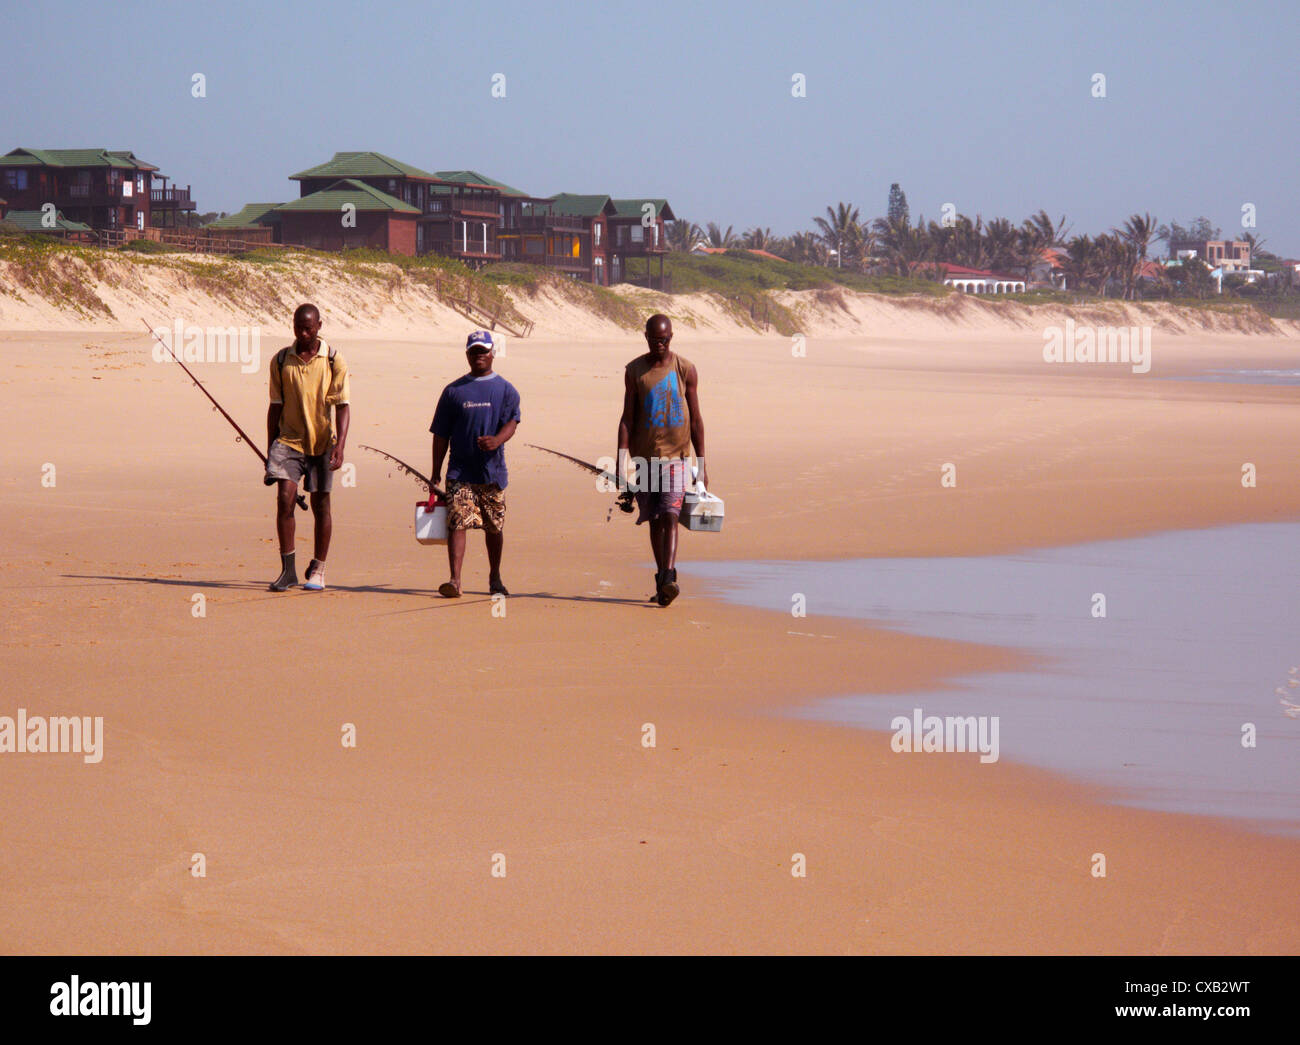 Men going fishing at Coco Cabanas beach resort. Ponta do Ouro, southern Mozambique. - Stock Image